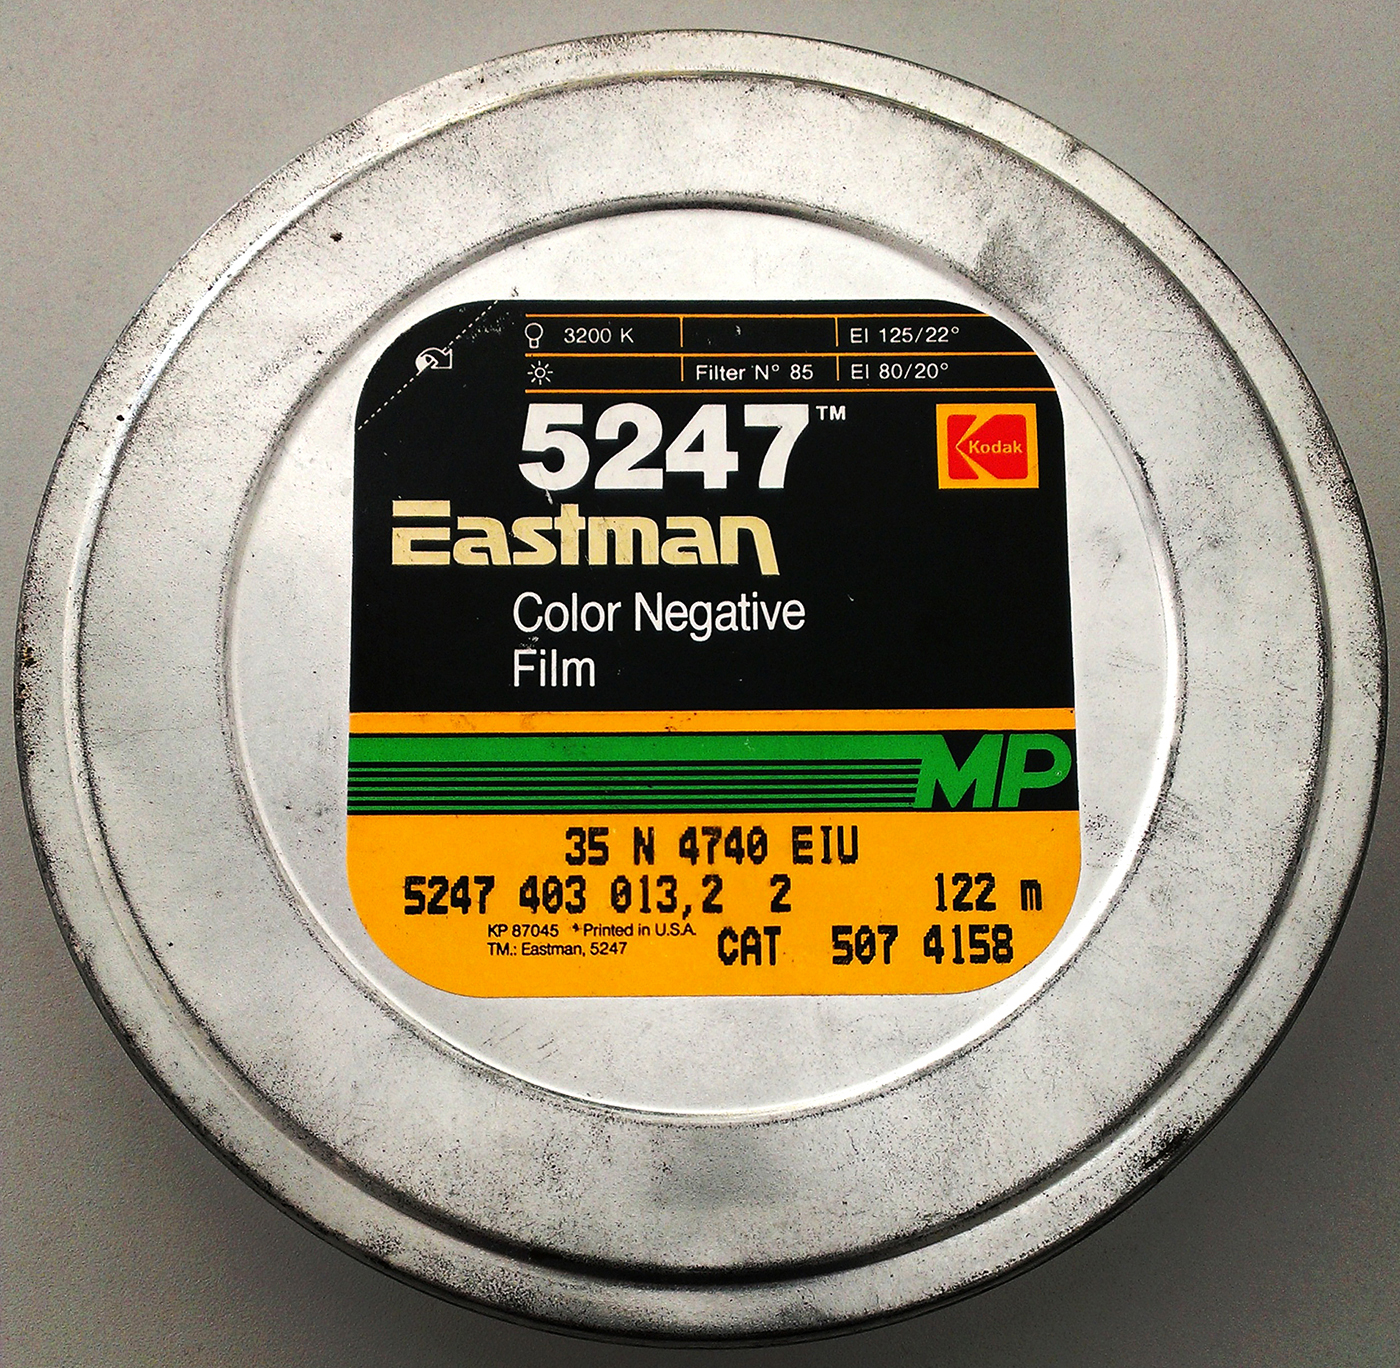 Kodak motion picture film 5247